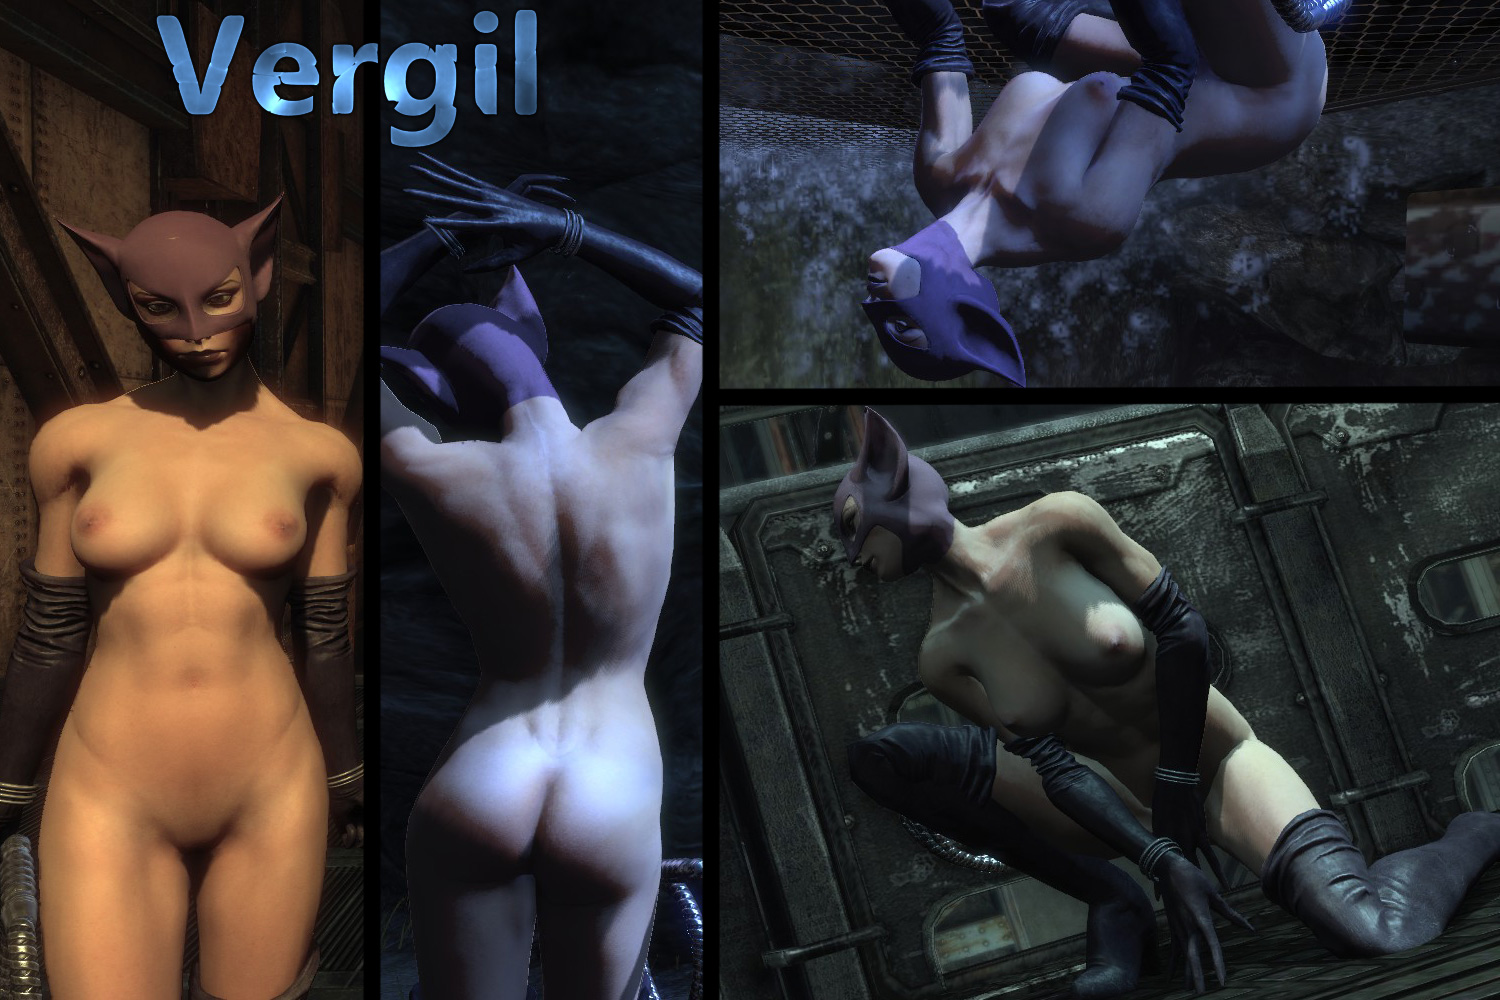 Batman arkham city naked women mod xxx movie